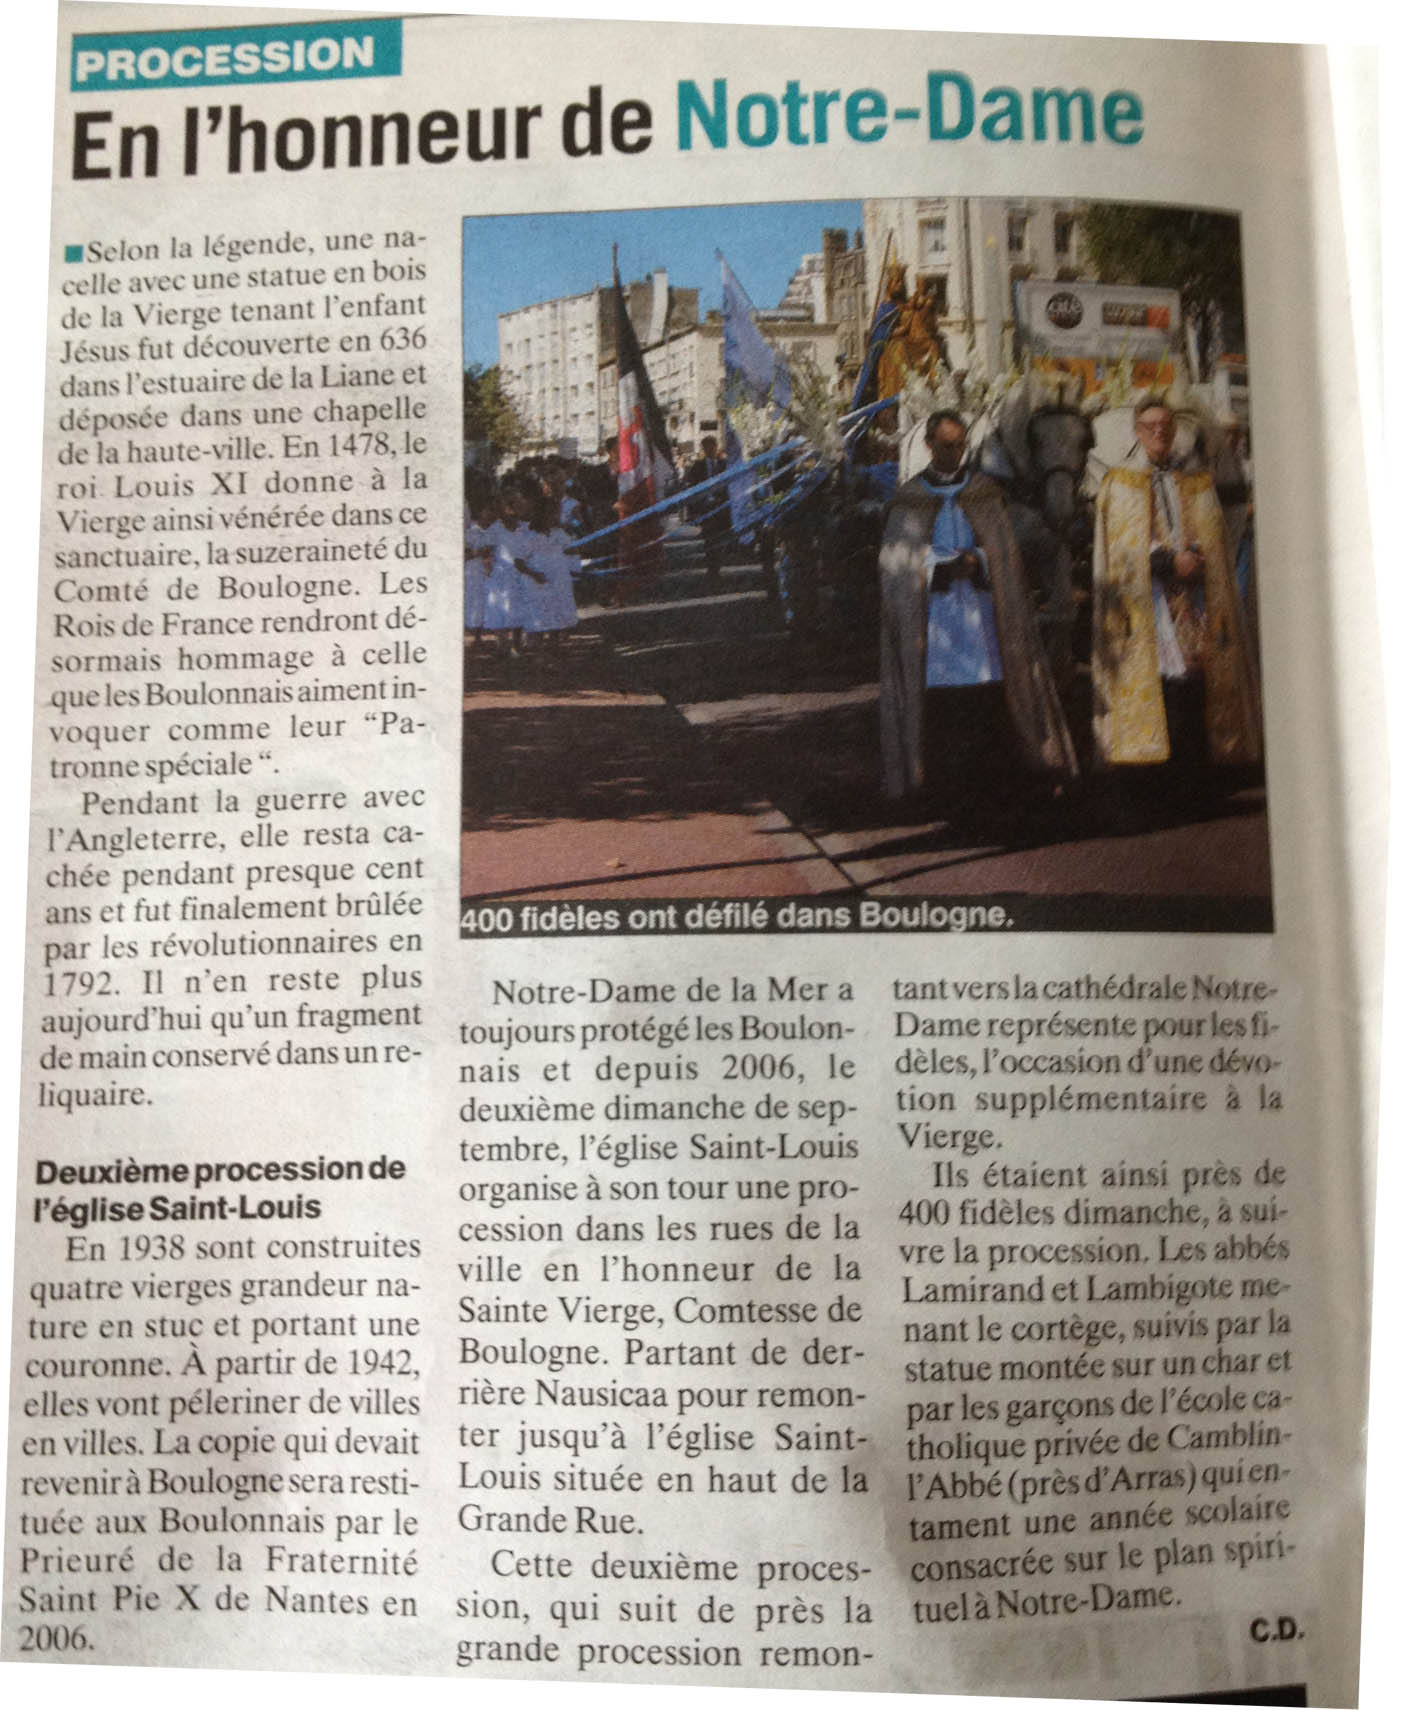 Procession 2012 - Article semaine boulonnais